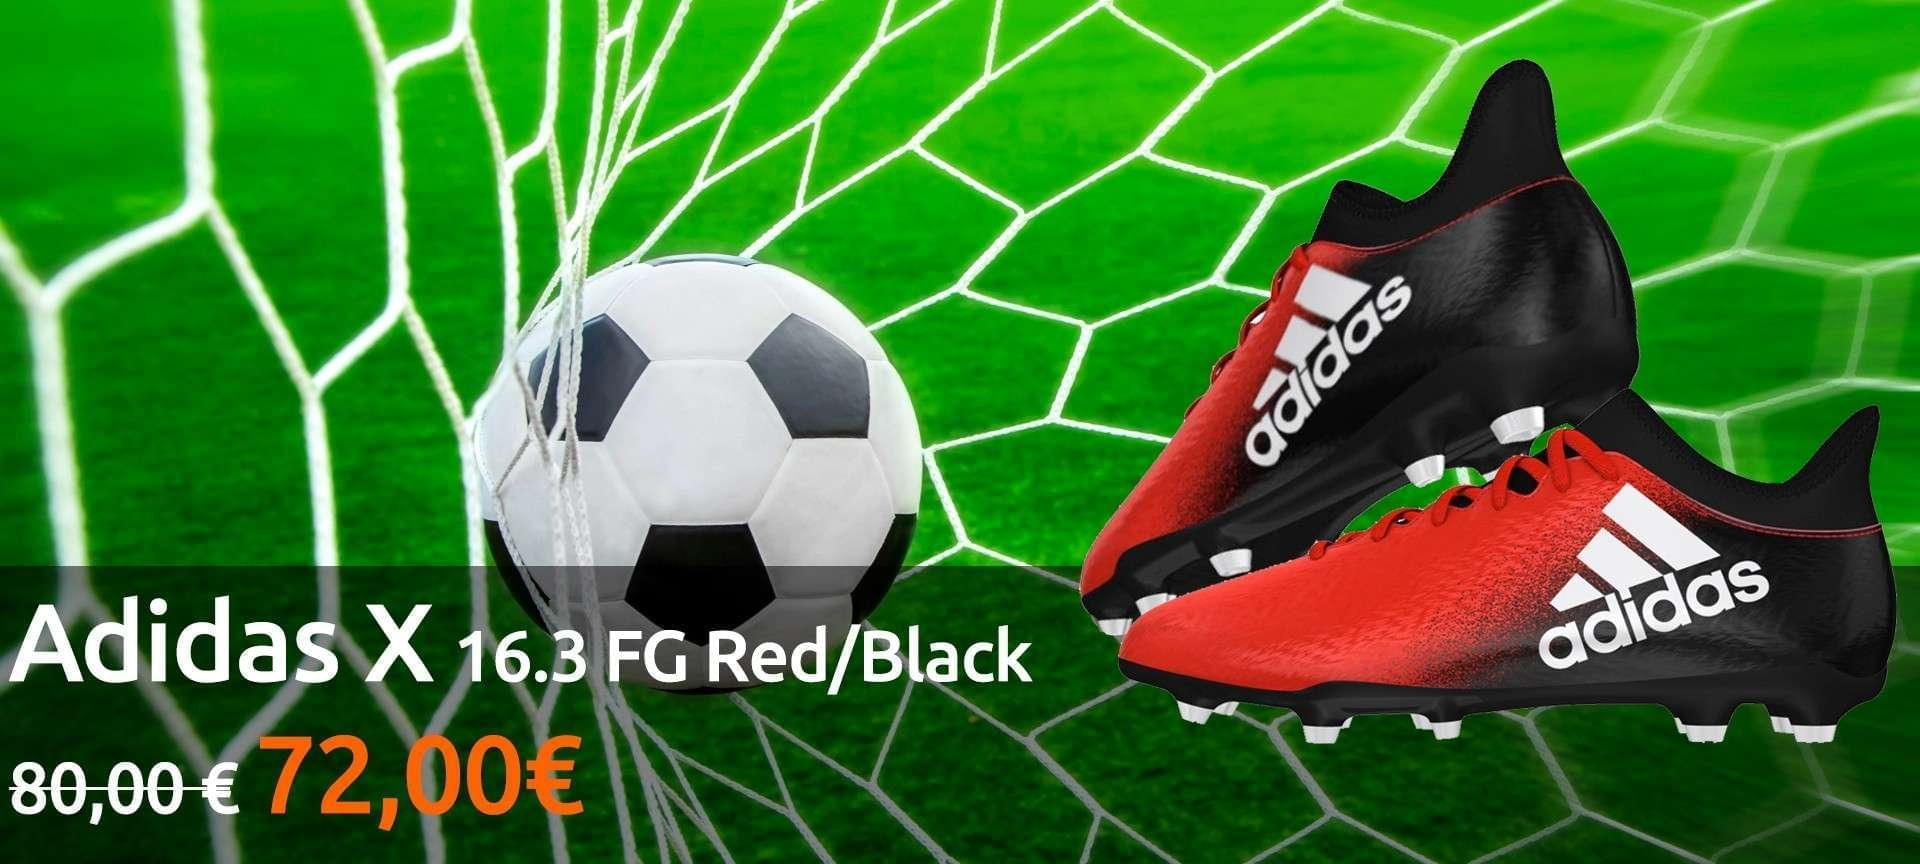 Scarpe adidas x 16.3 FG Red/Black